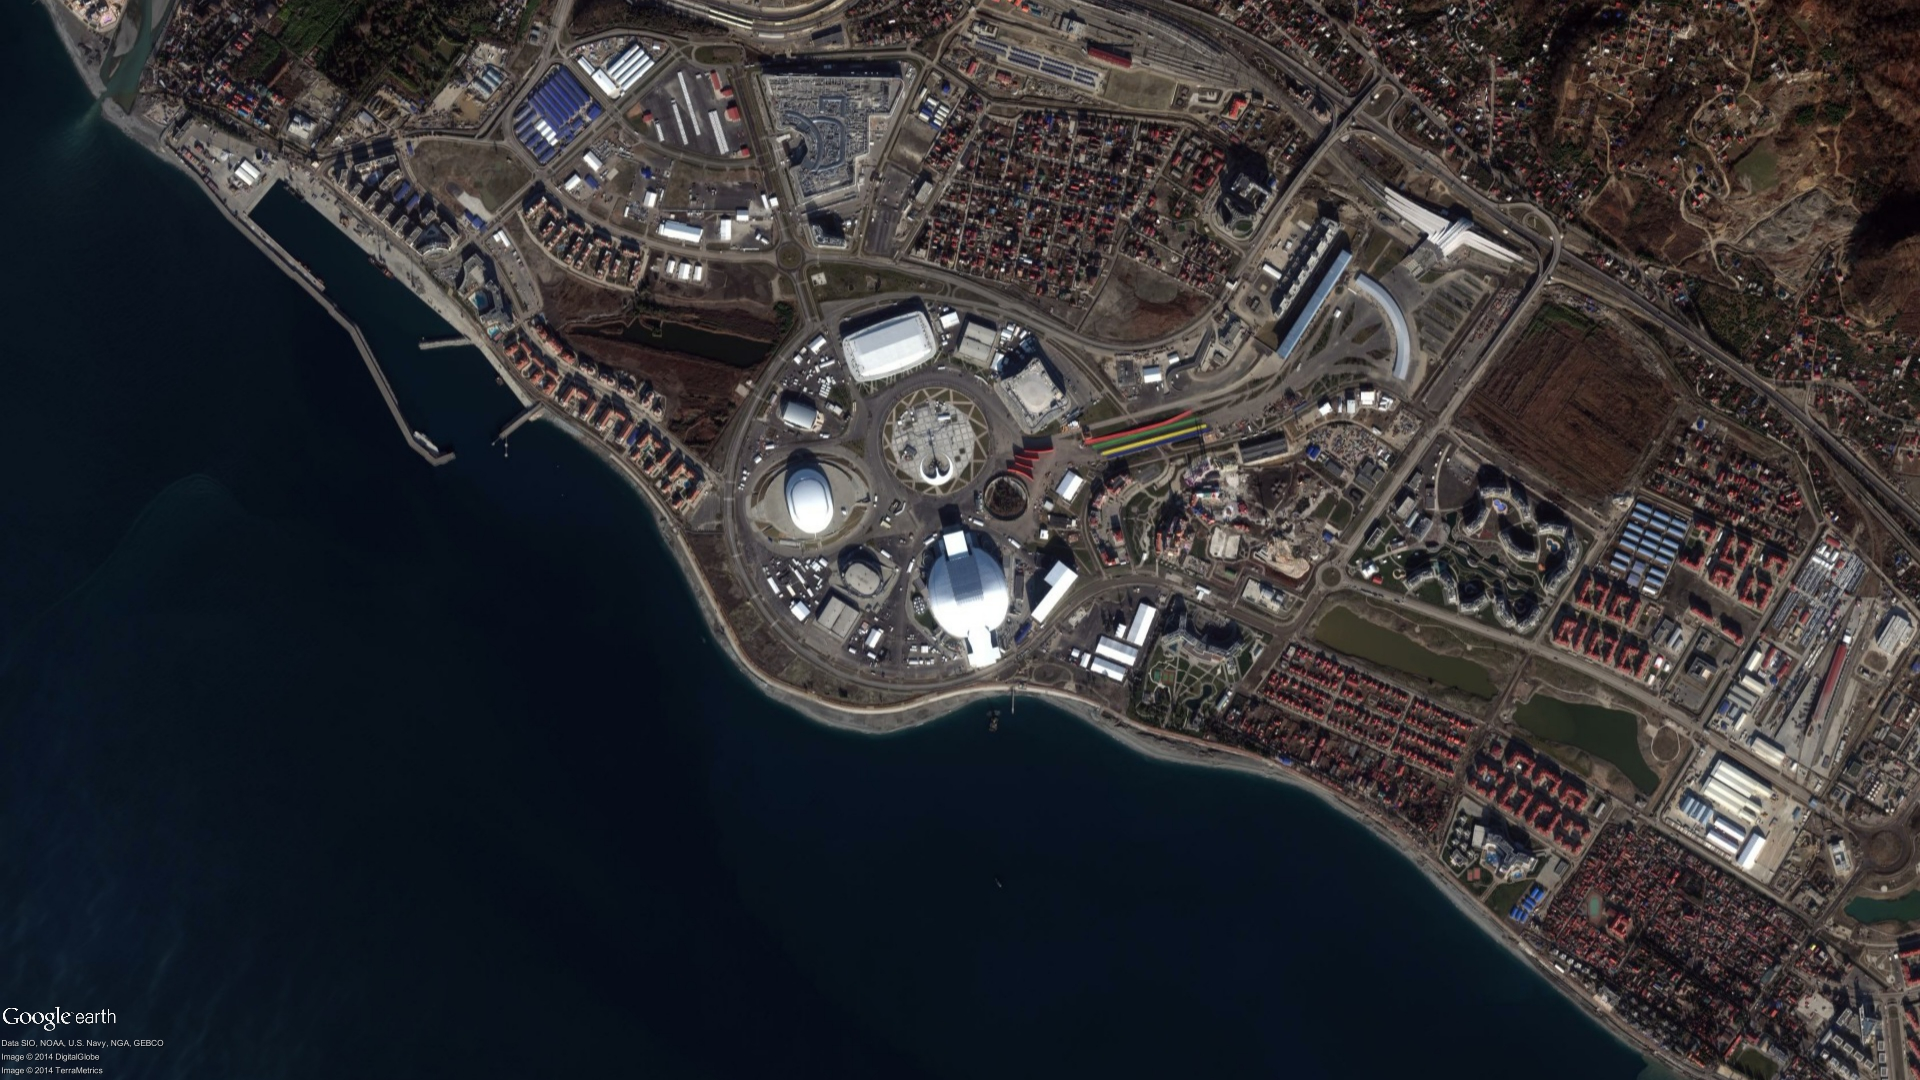 Photos: 2014 Sochi Winter Olympics and Space Travel